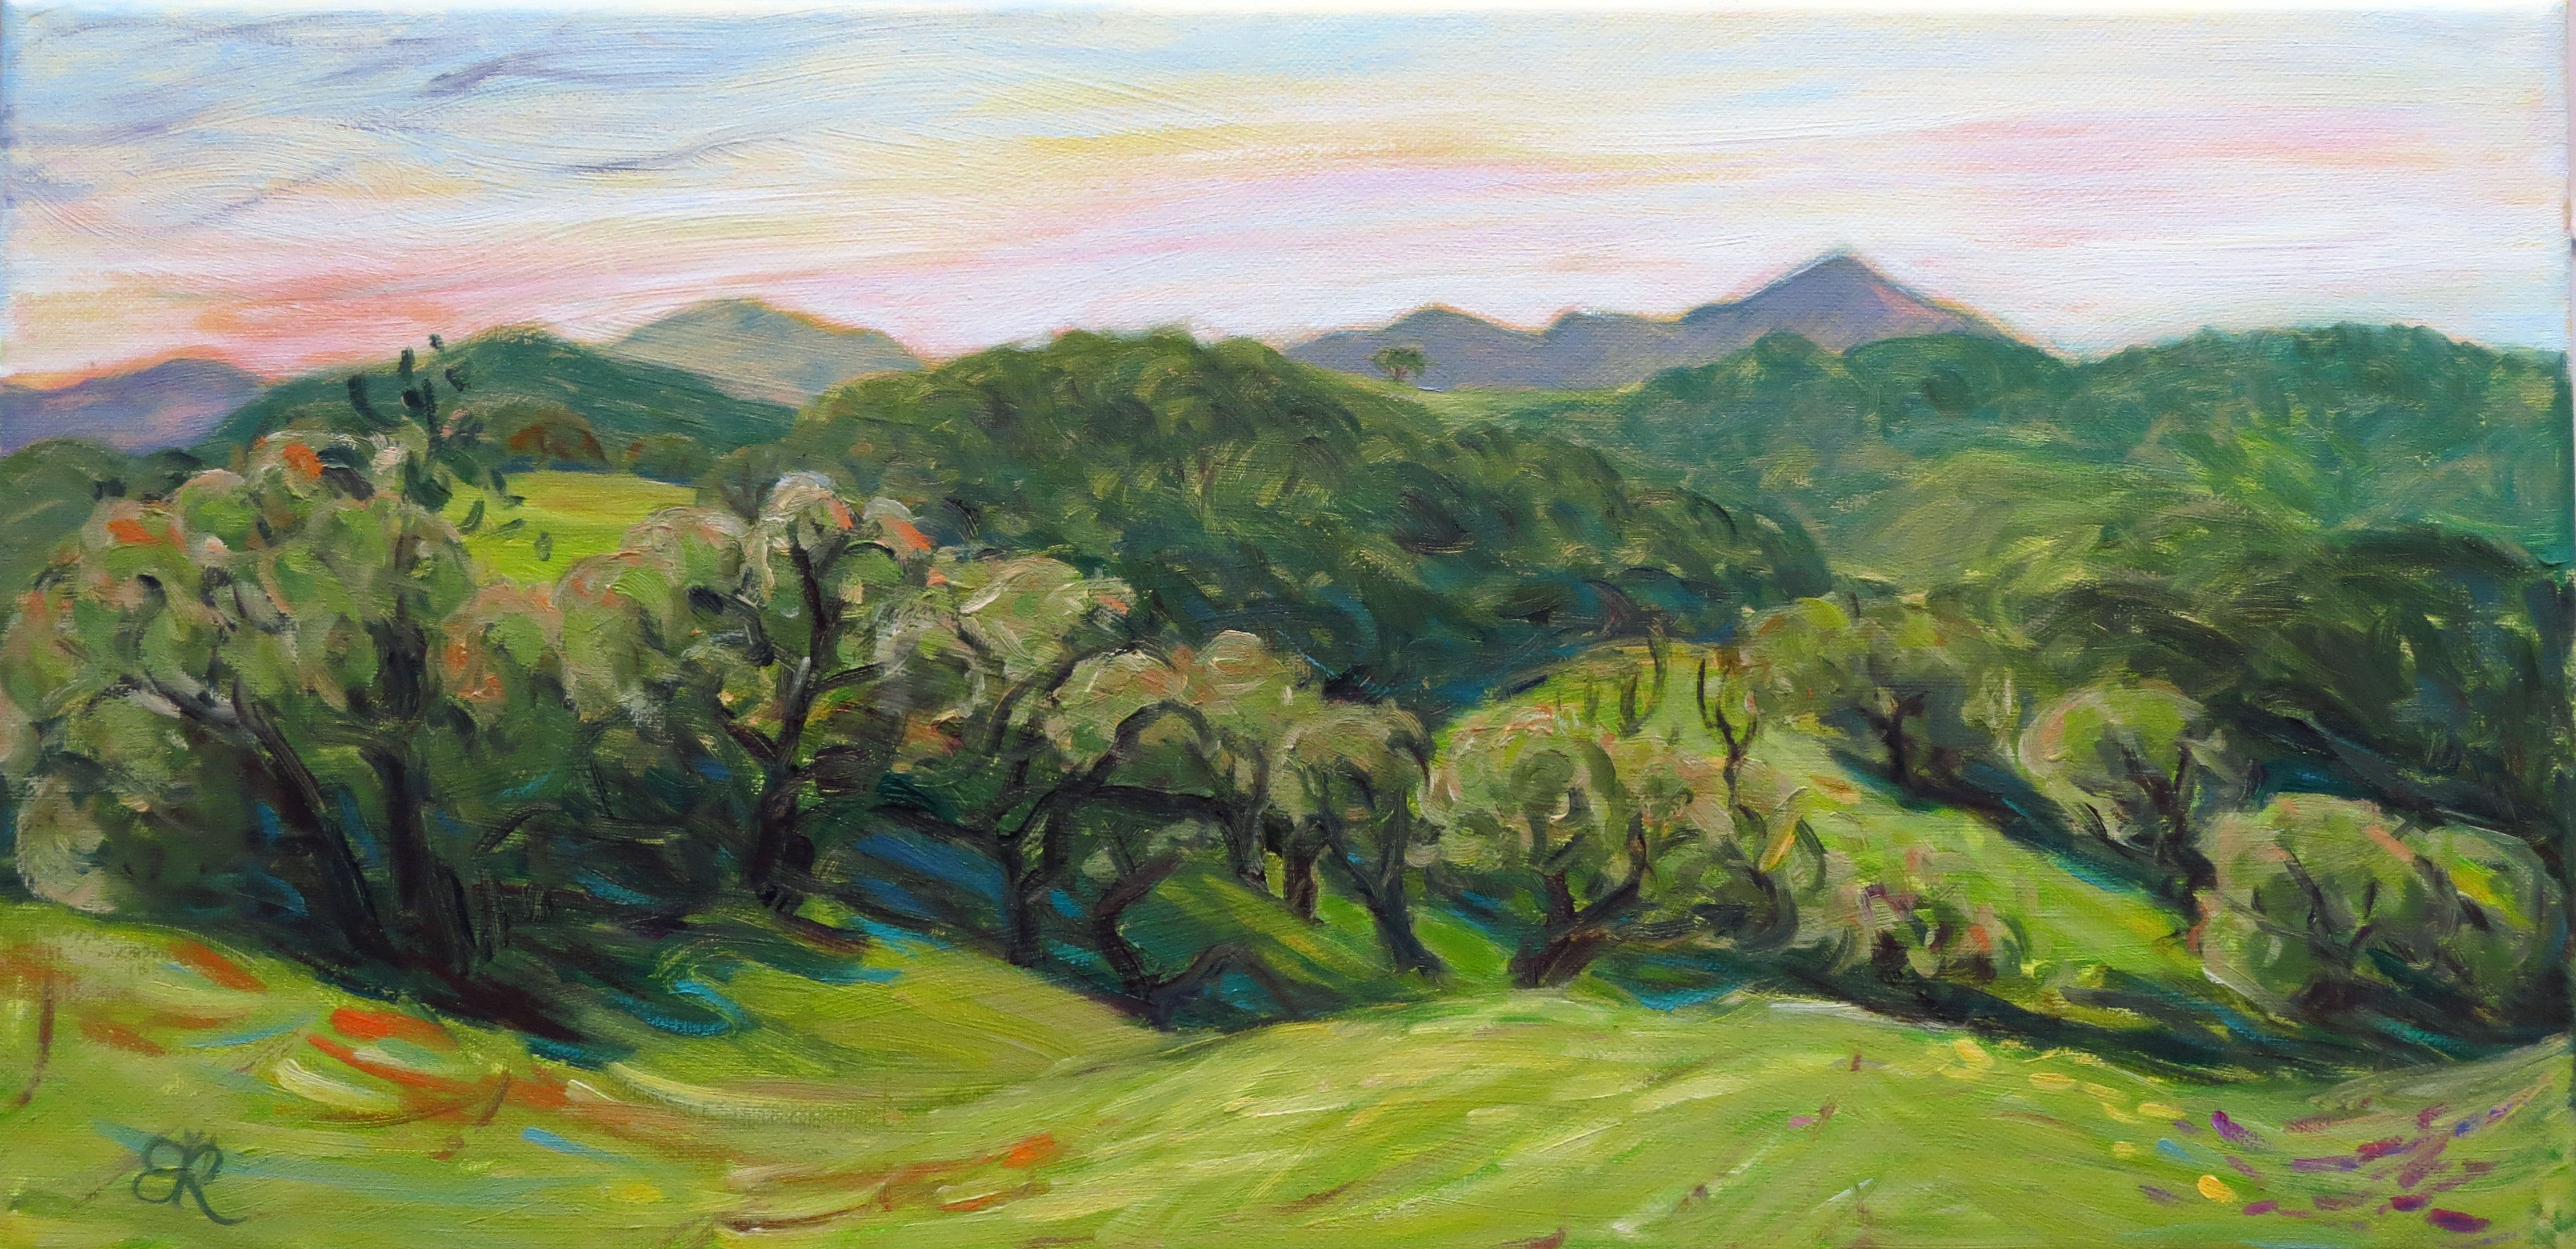 New Gallery Exhibit – You're Invited!